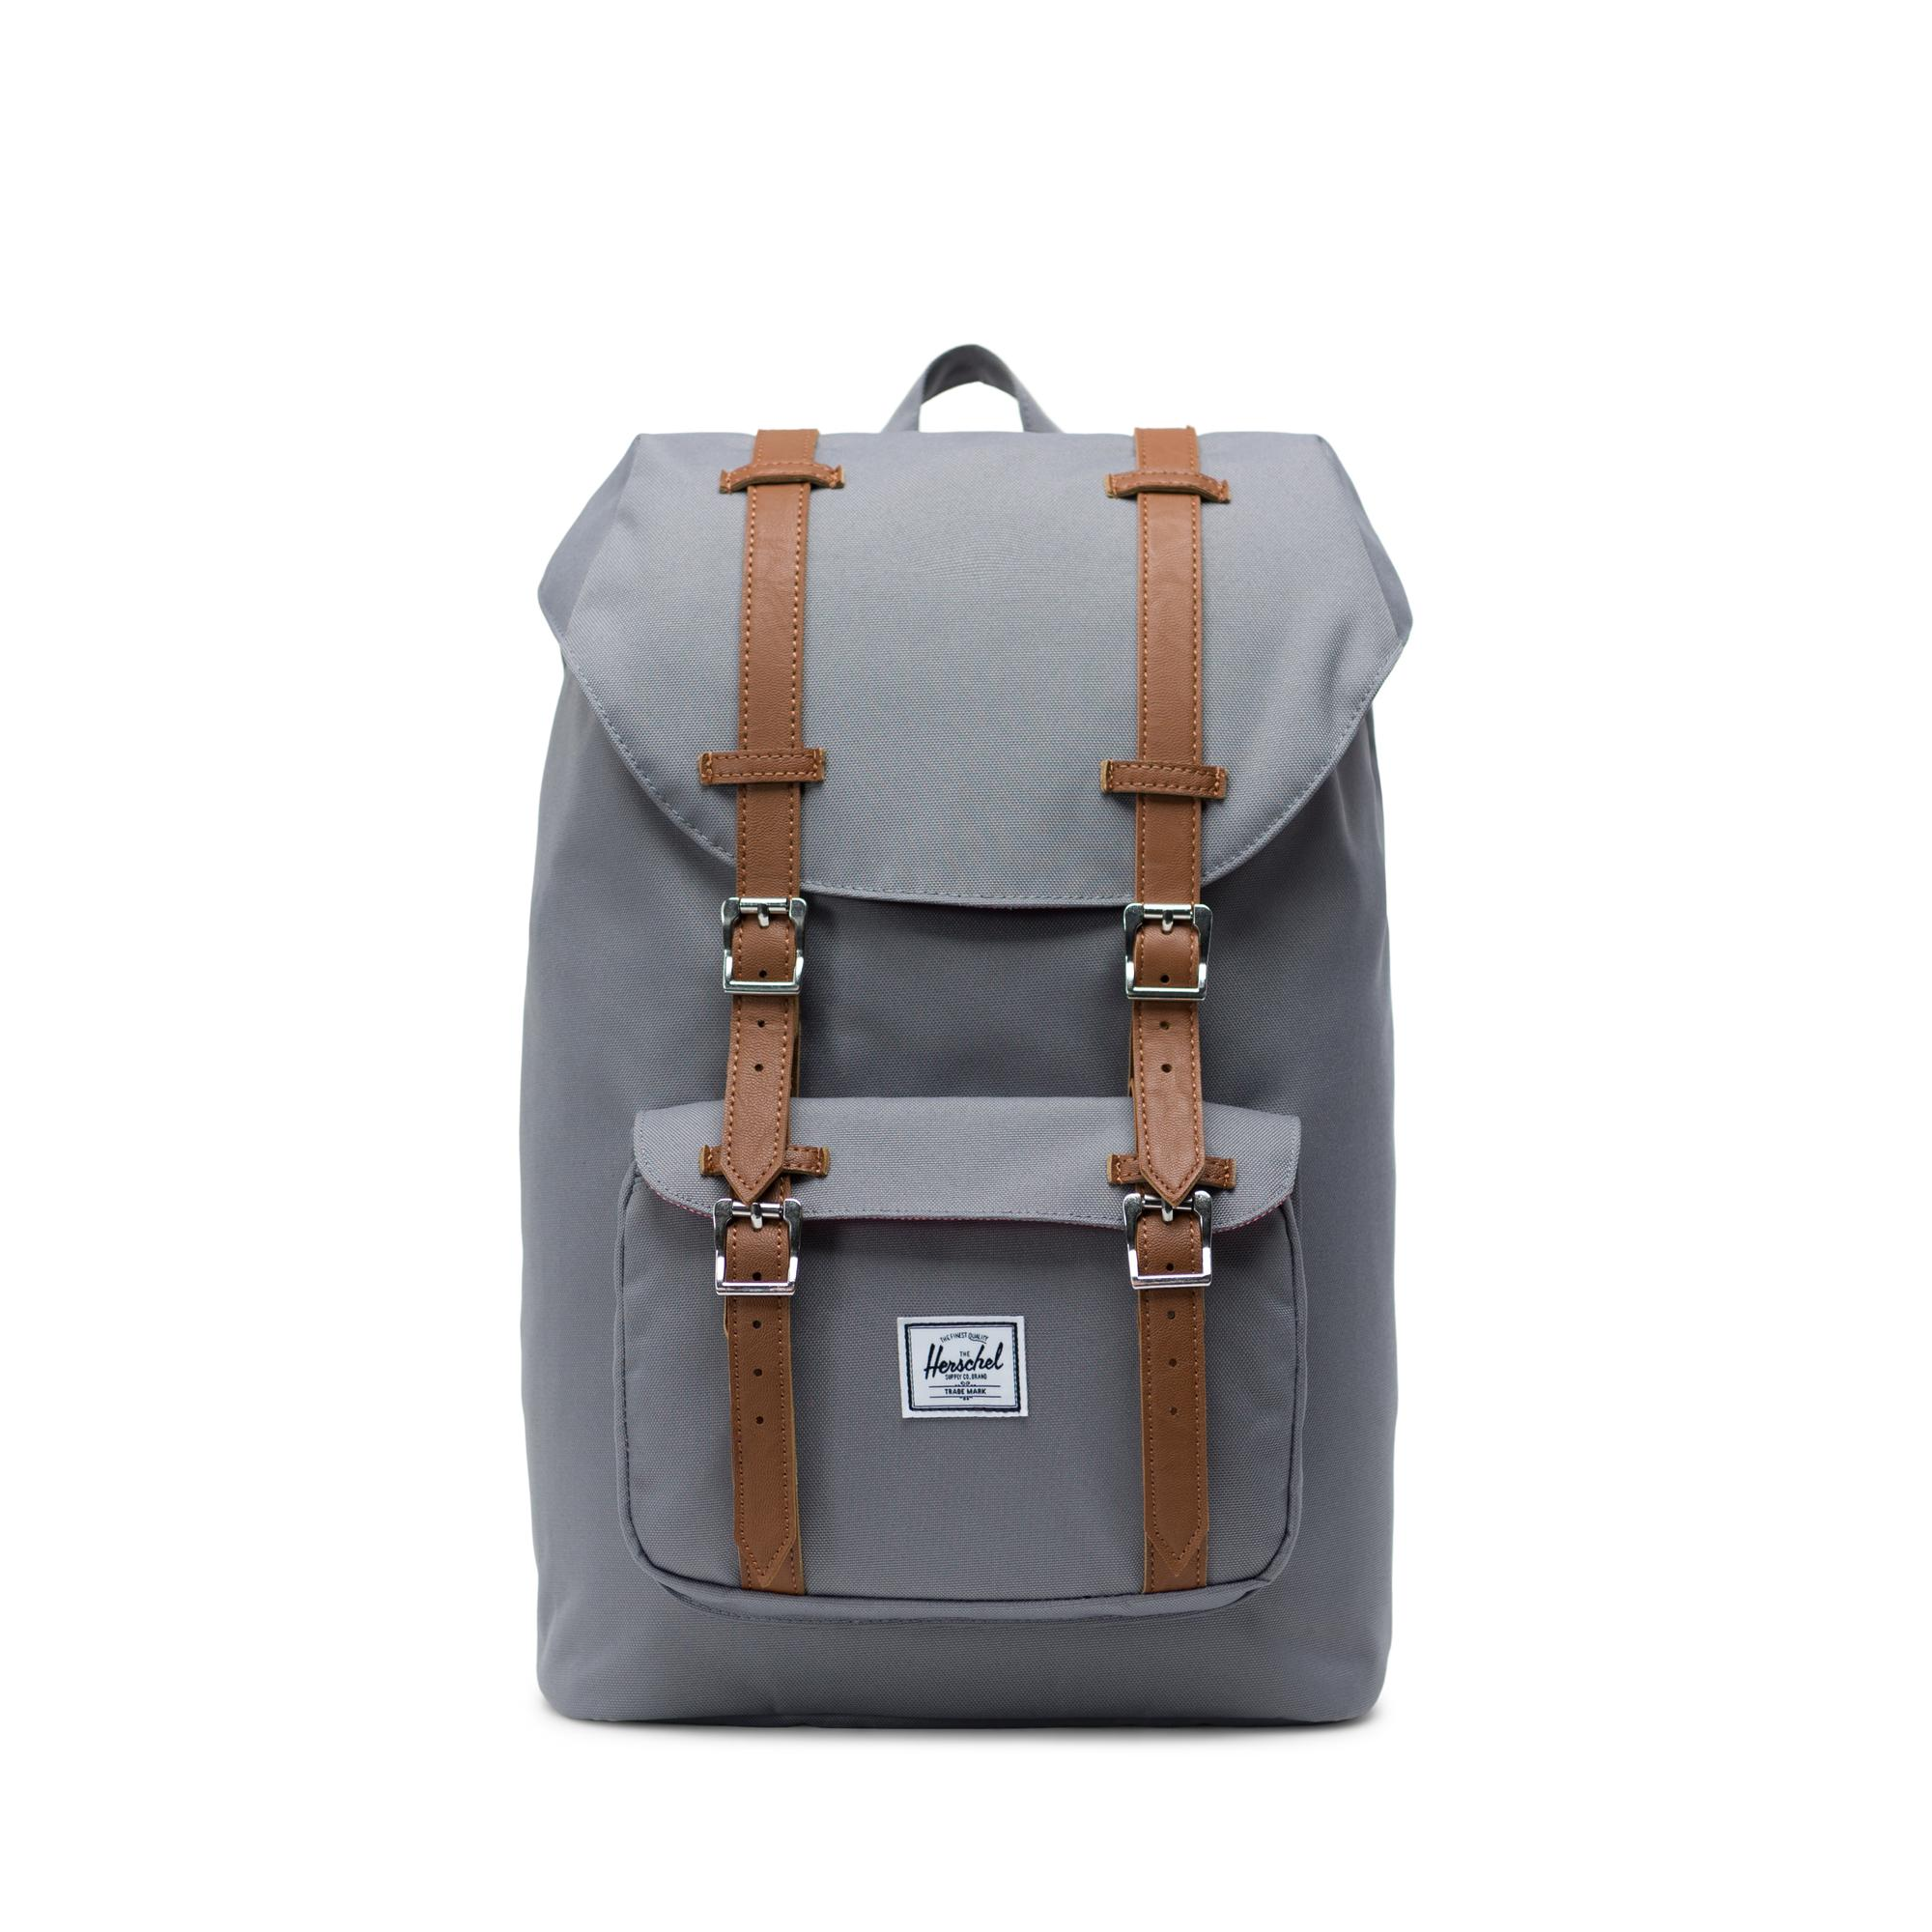 dbb1a9994c3 Herschel Little America Backpack Mid-Volume